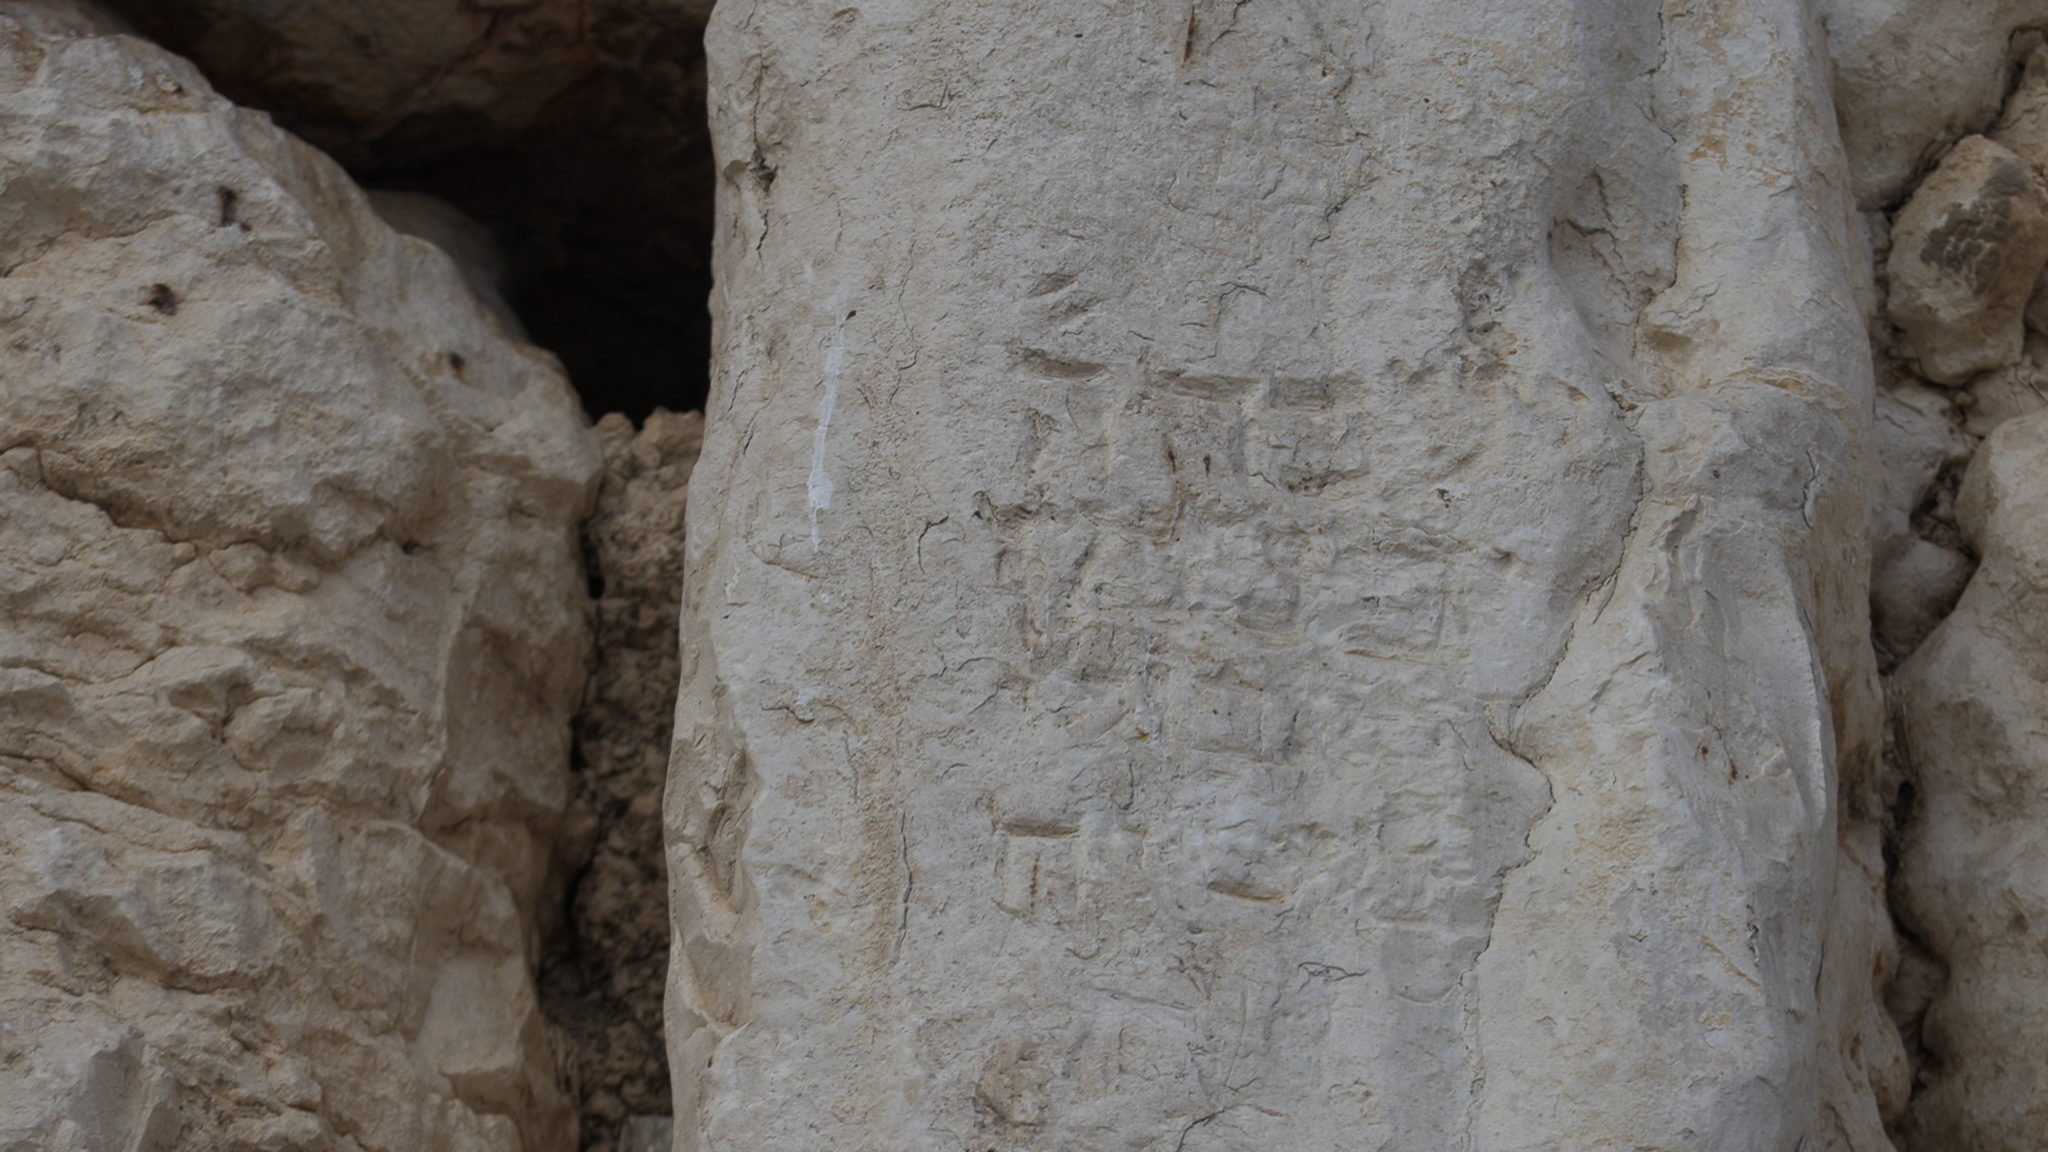 Hebrew writing on stone at the Western Wall